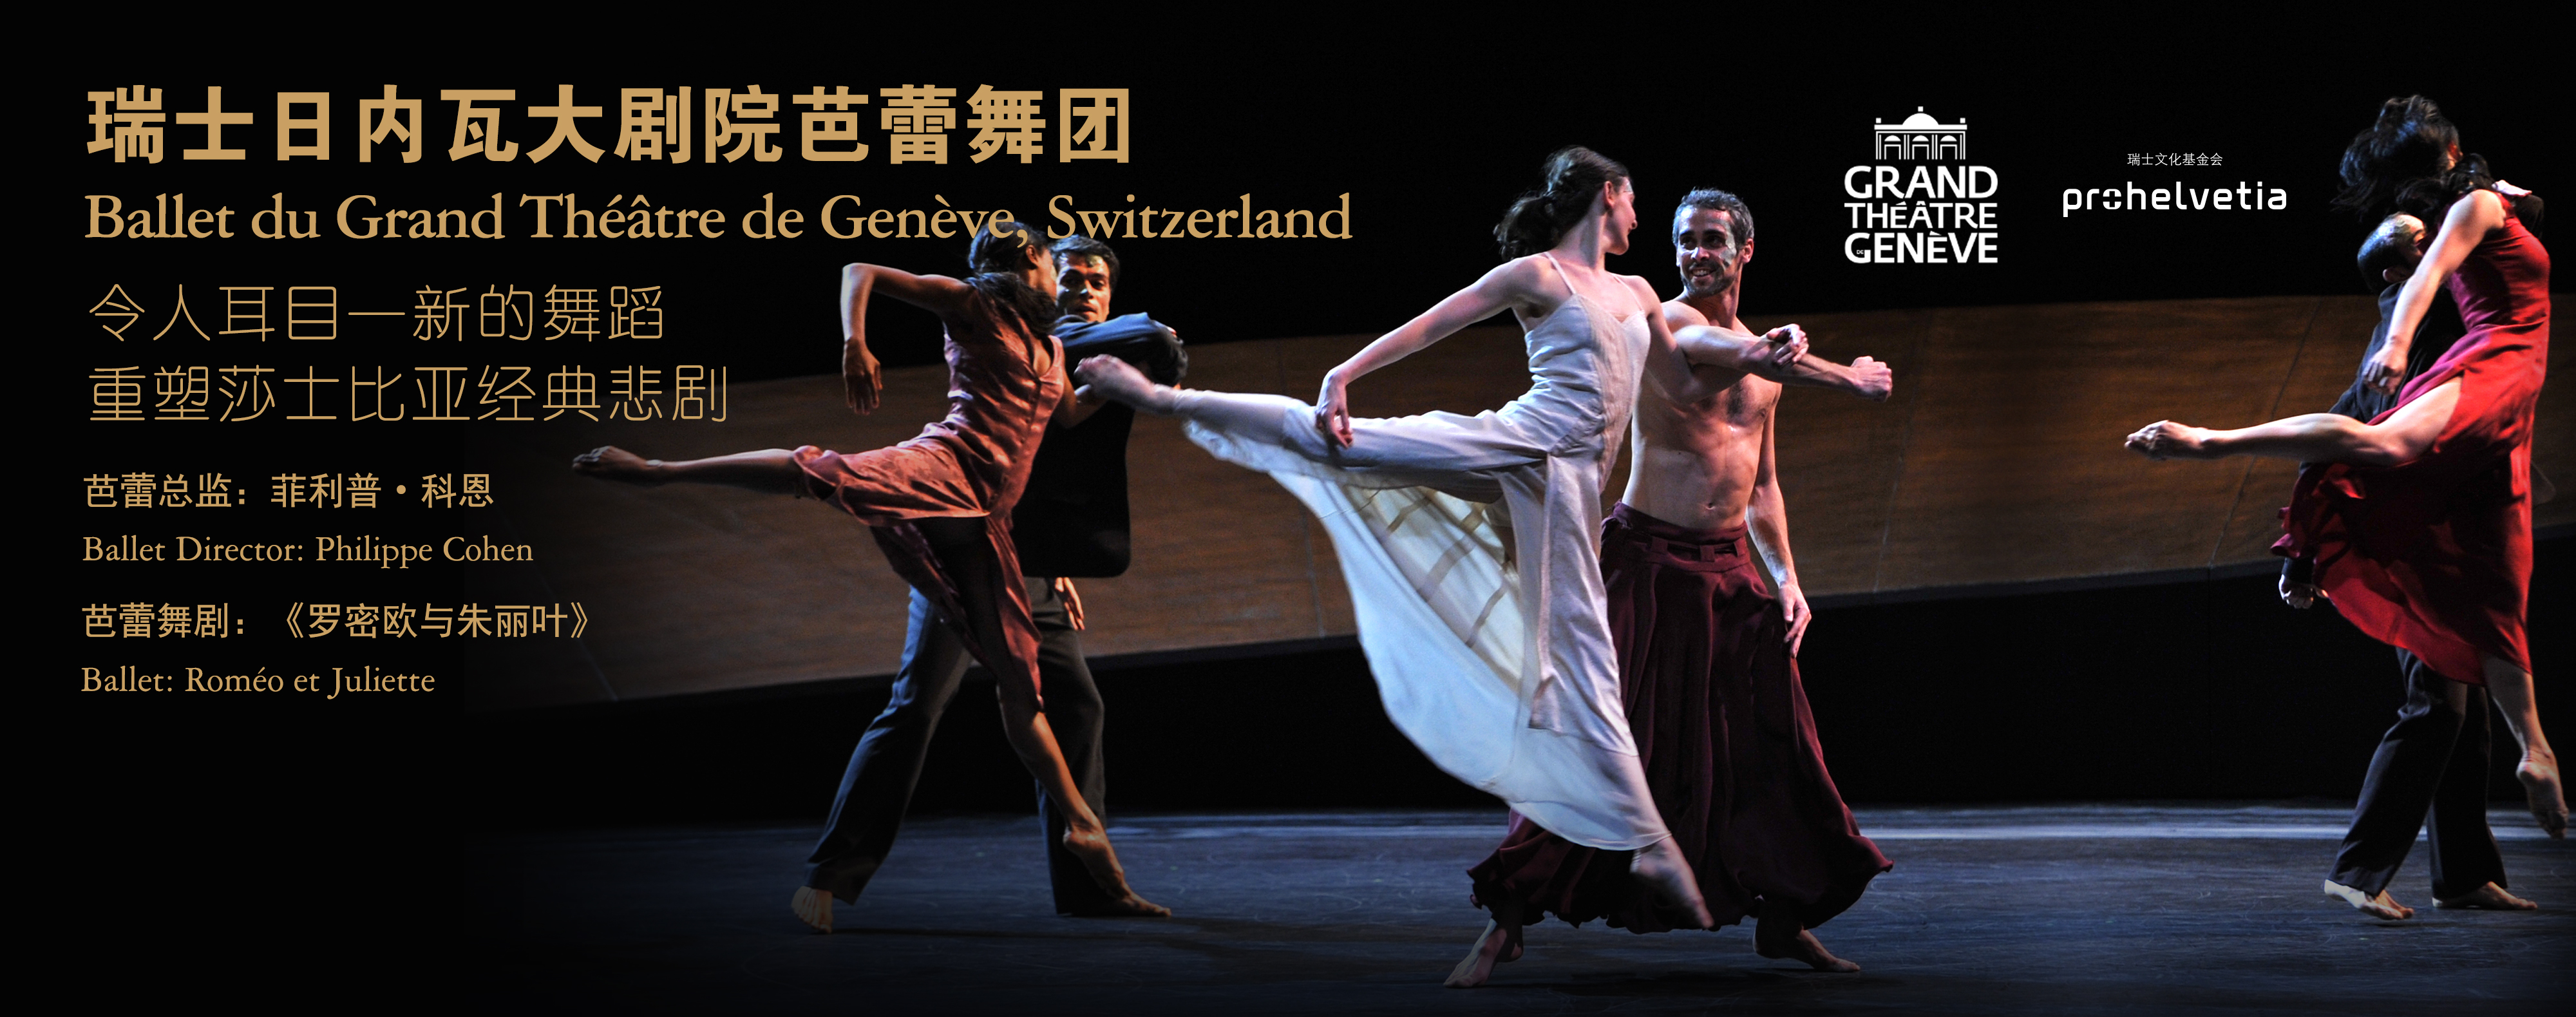 Timeless Romeo And Juliet Brought By Geneva Ballet Pro Helvetia Dance Moves Diagram Shanghai